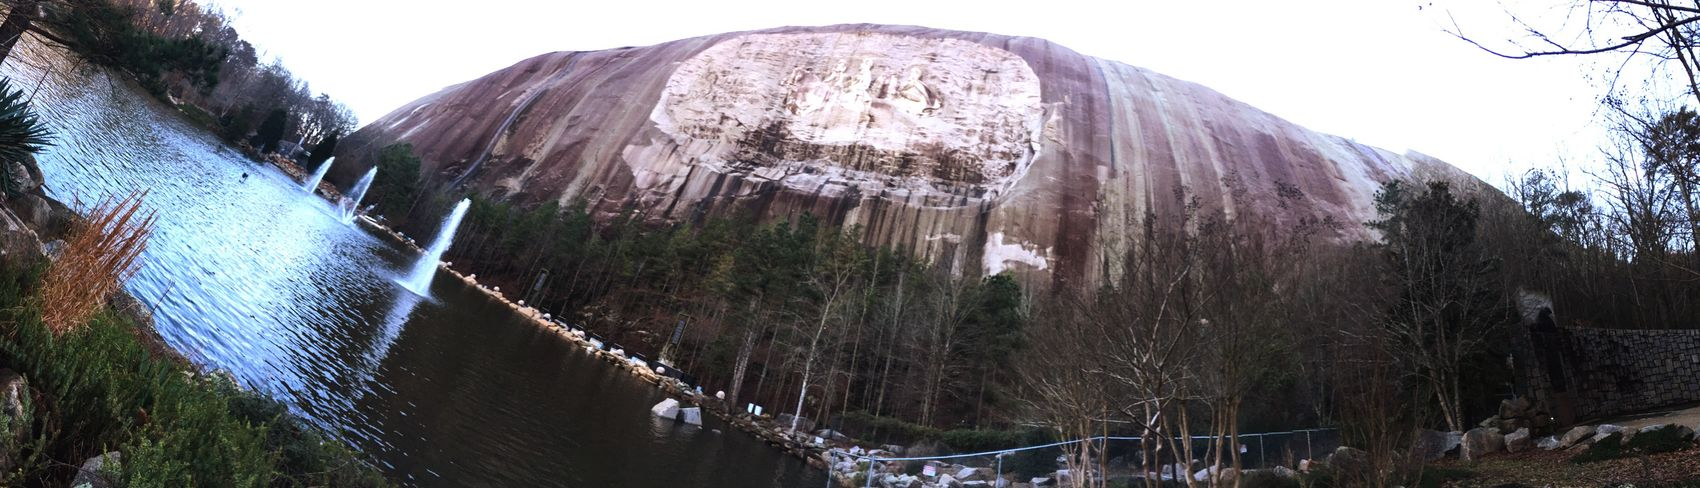 Nice place to visit at Stone mountain and spend some good time!! Mountain View Mountain_collection Mountain Stone Statue Forest Lake View Lake Relaxing Resting Taking Sun